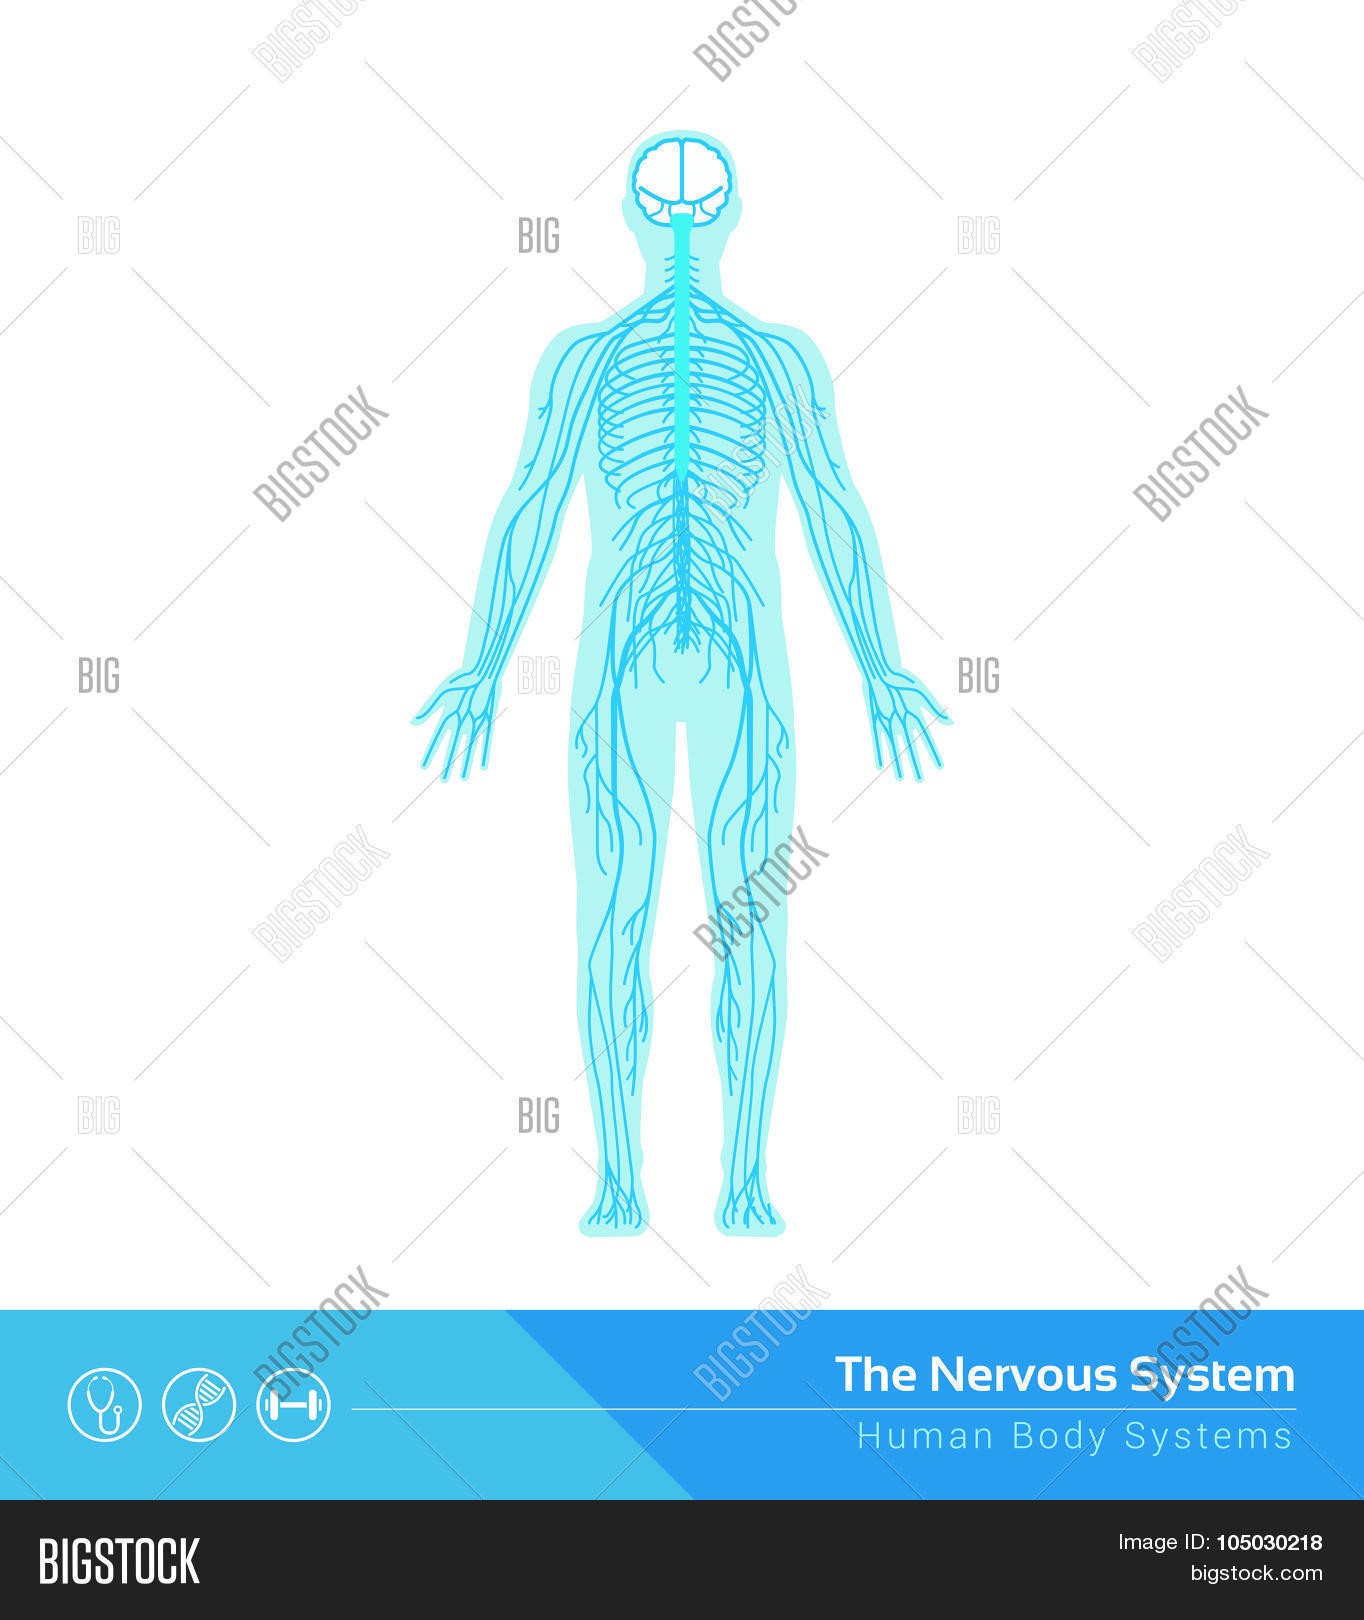 anatomical,anatomy,autonomic,biology,body,brain,central,cerebrospinal,cns,connections,cord,education,functions,health,healthcare,human,medicine,nerves,nervous,network,neurological,neurology,neurons,neuroscience,organism,peripheral,science,spinal,structure,sympathetic,synapses,system,transmission,vector